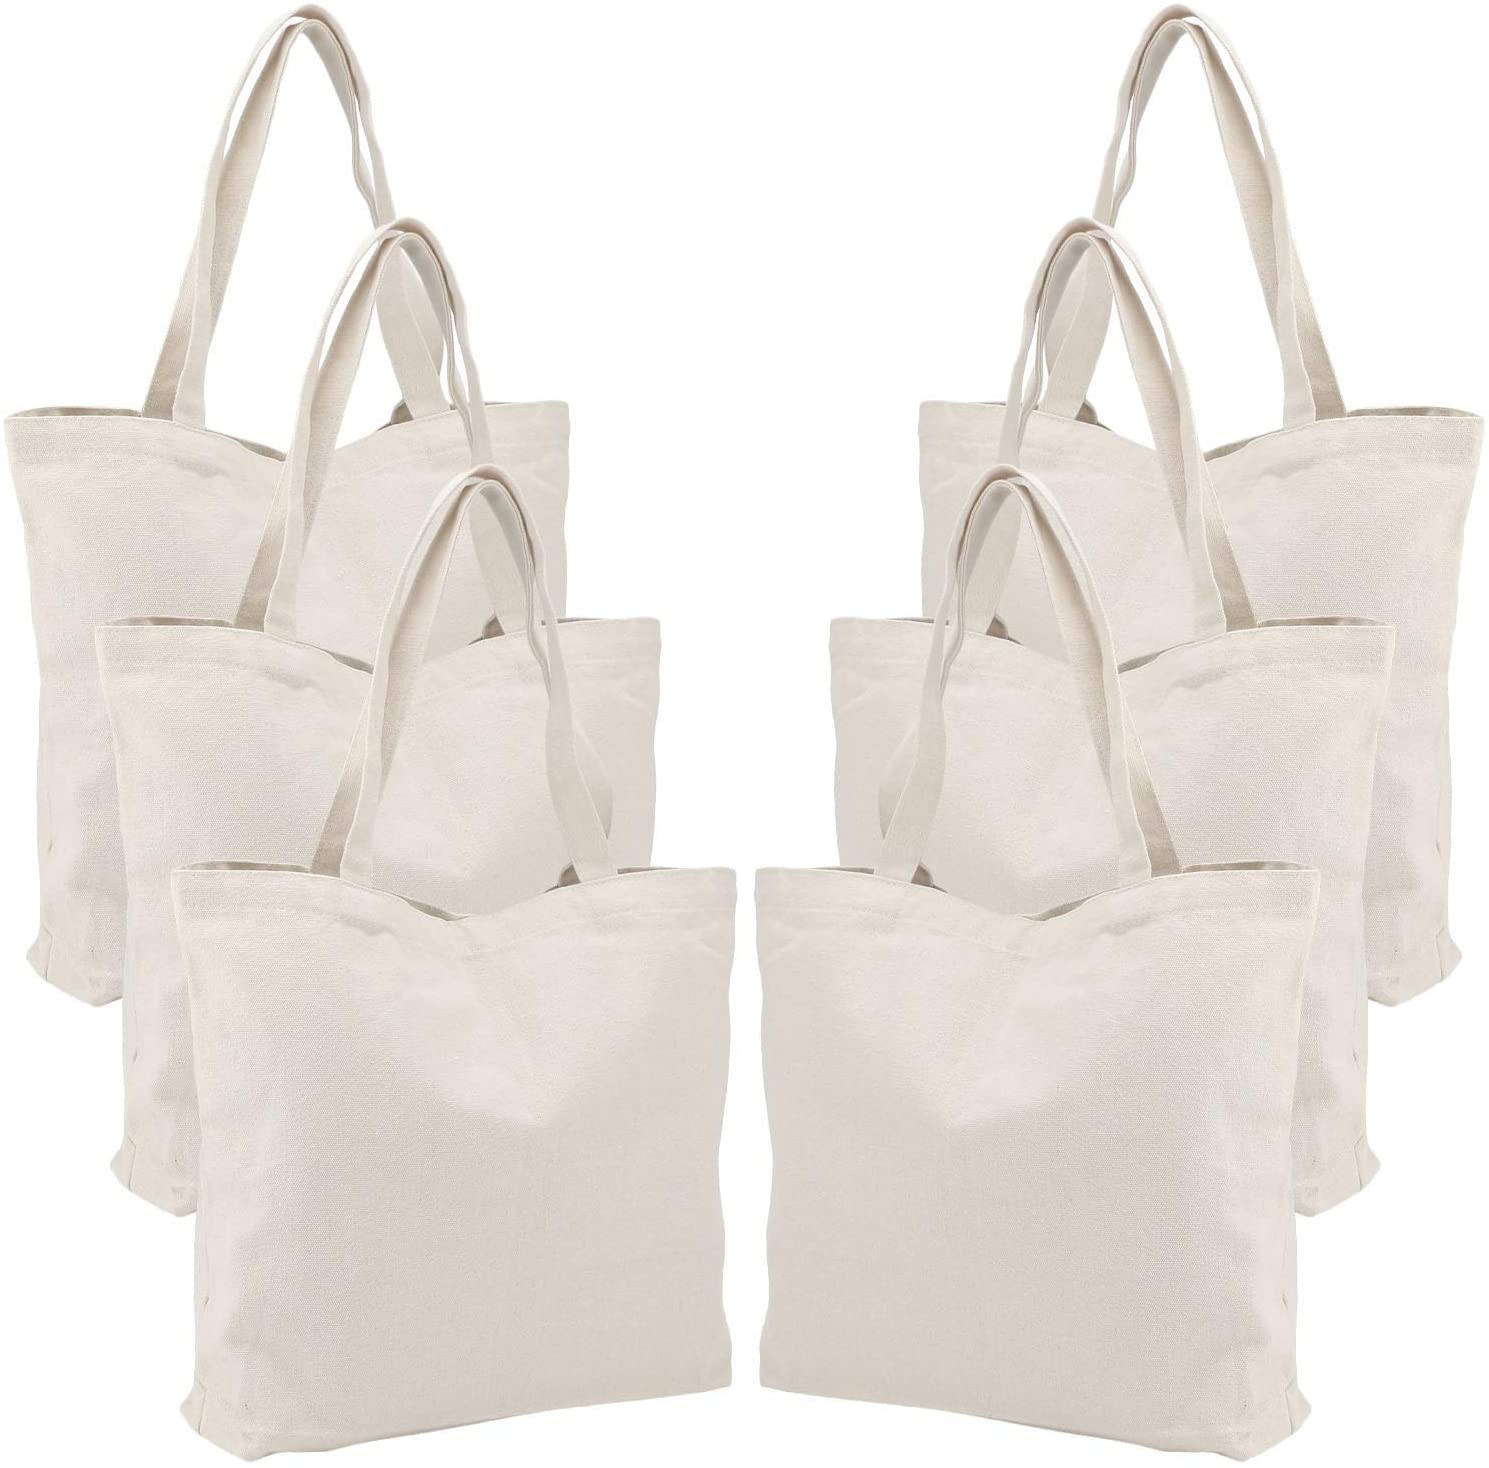 Blank canvas tote bags from BagzDepot